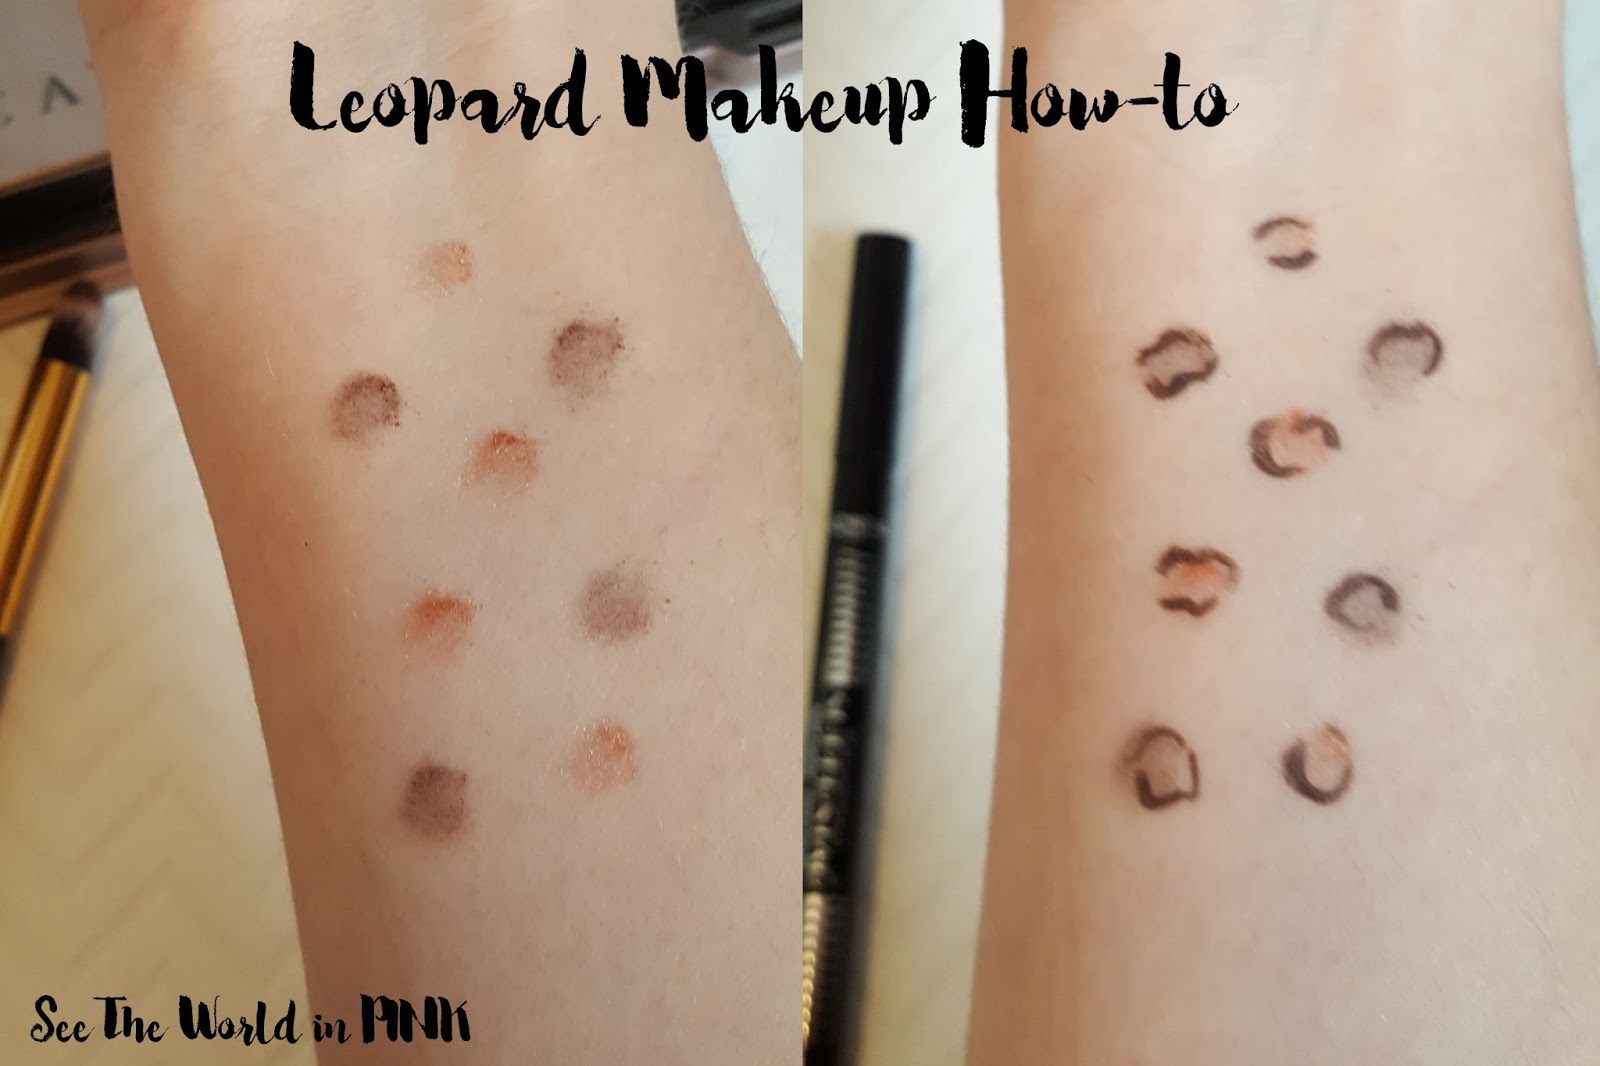 leopard makeup how-to tutorial